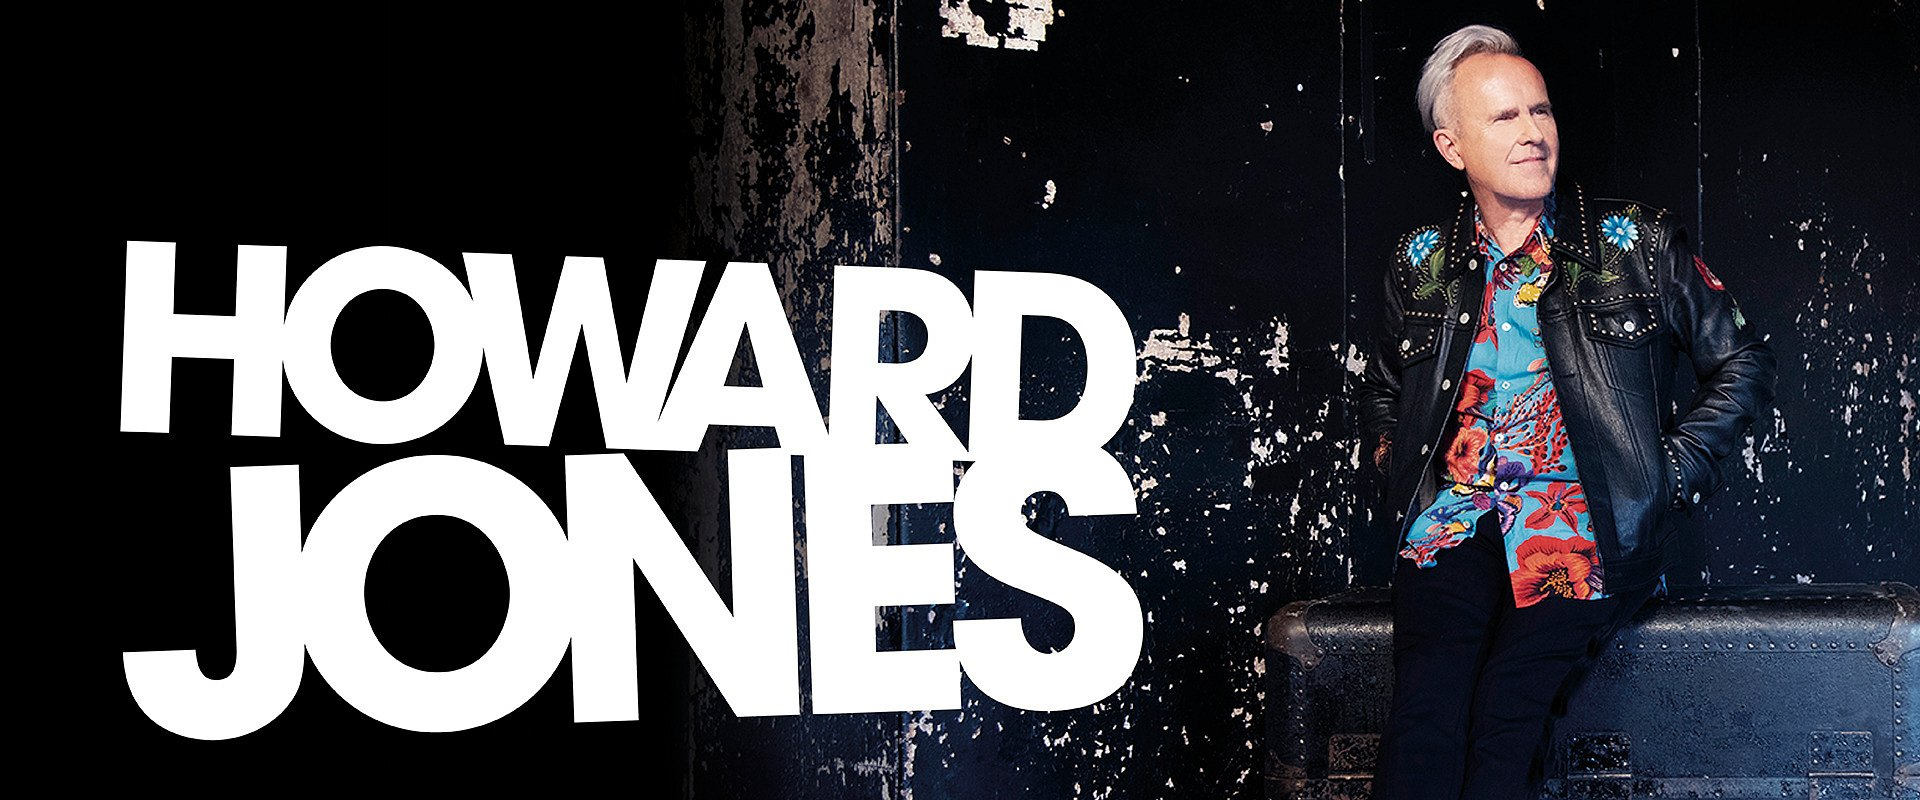 Howard Jones regresa a los escenarios